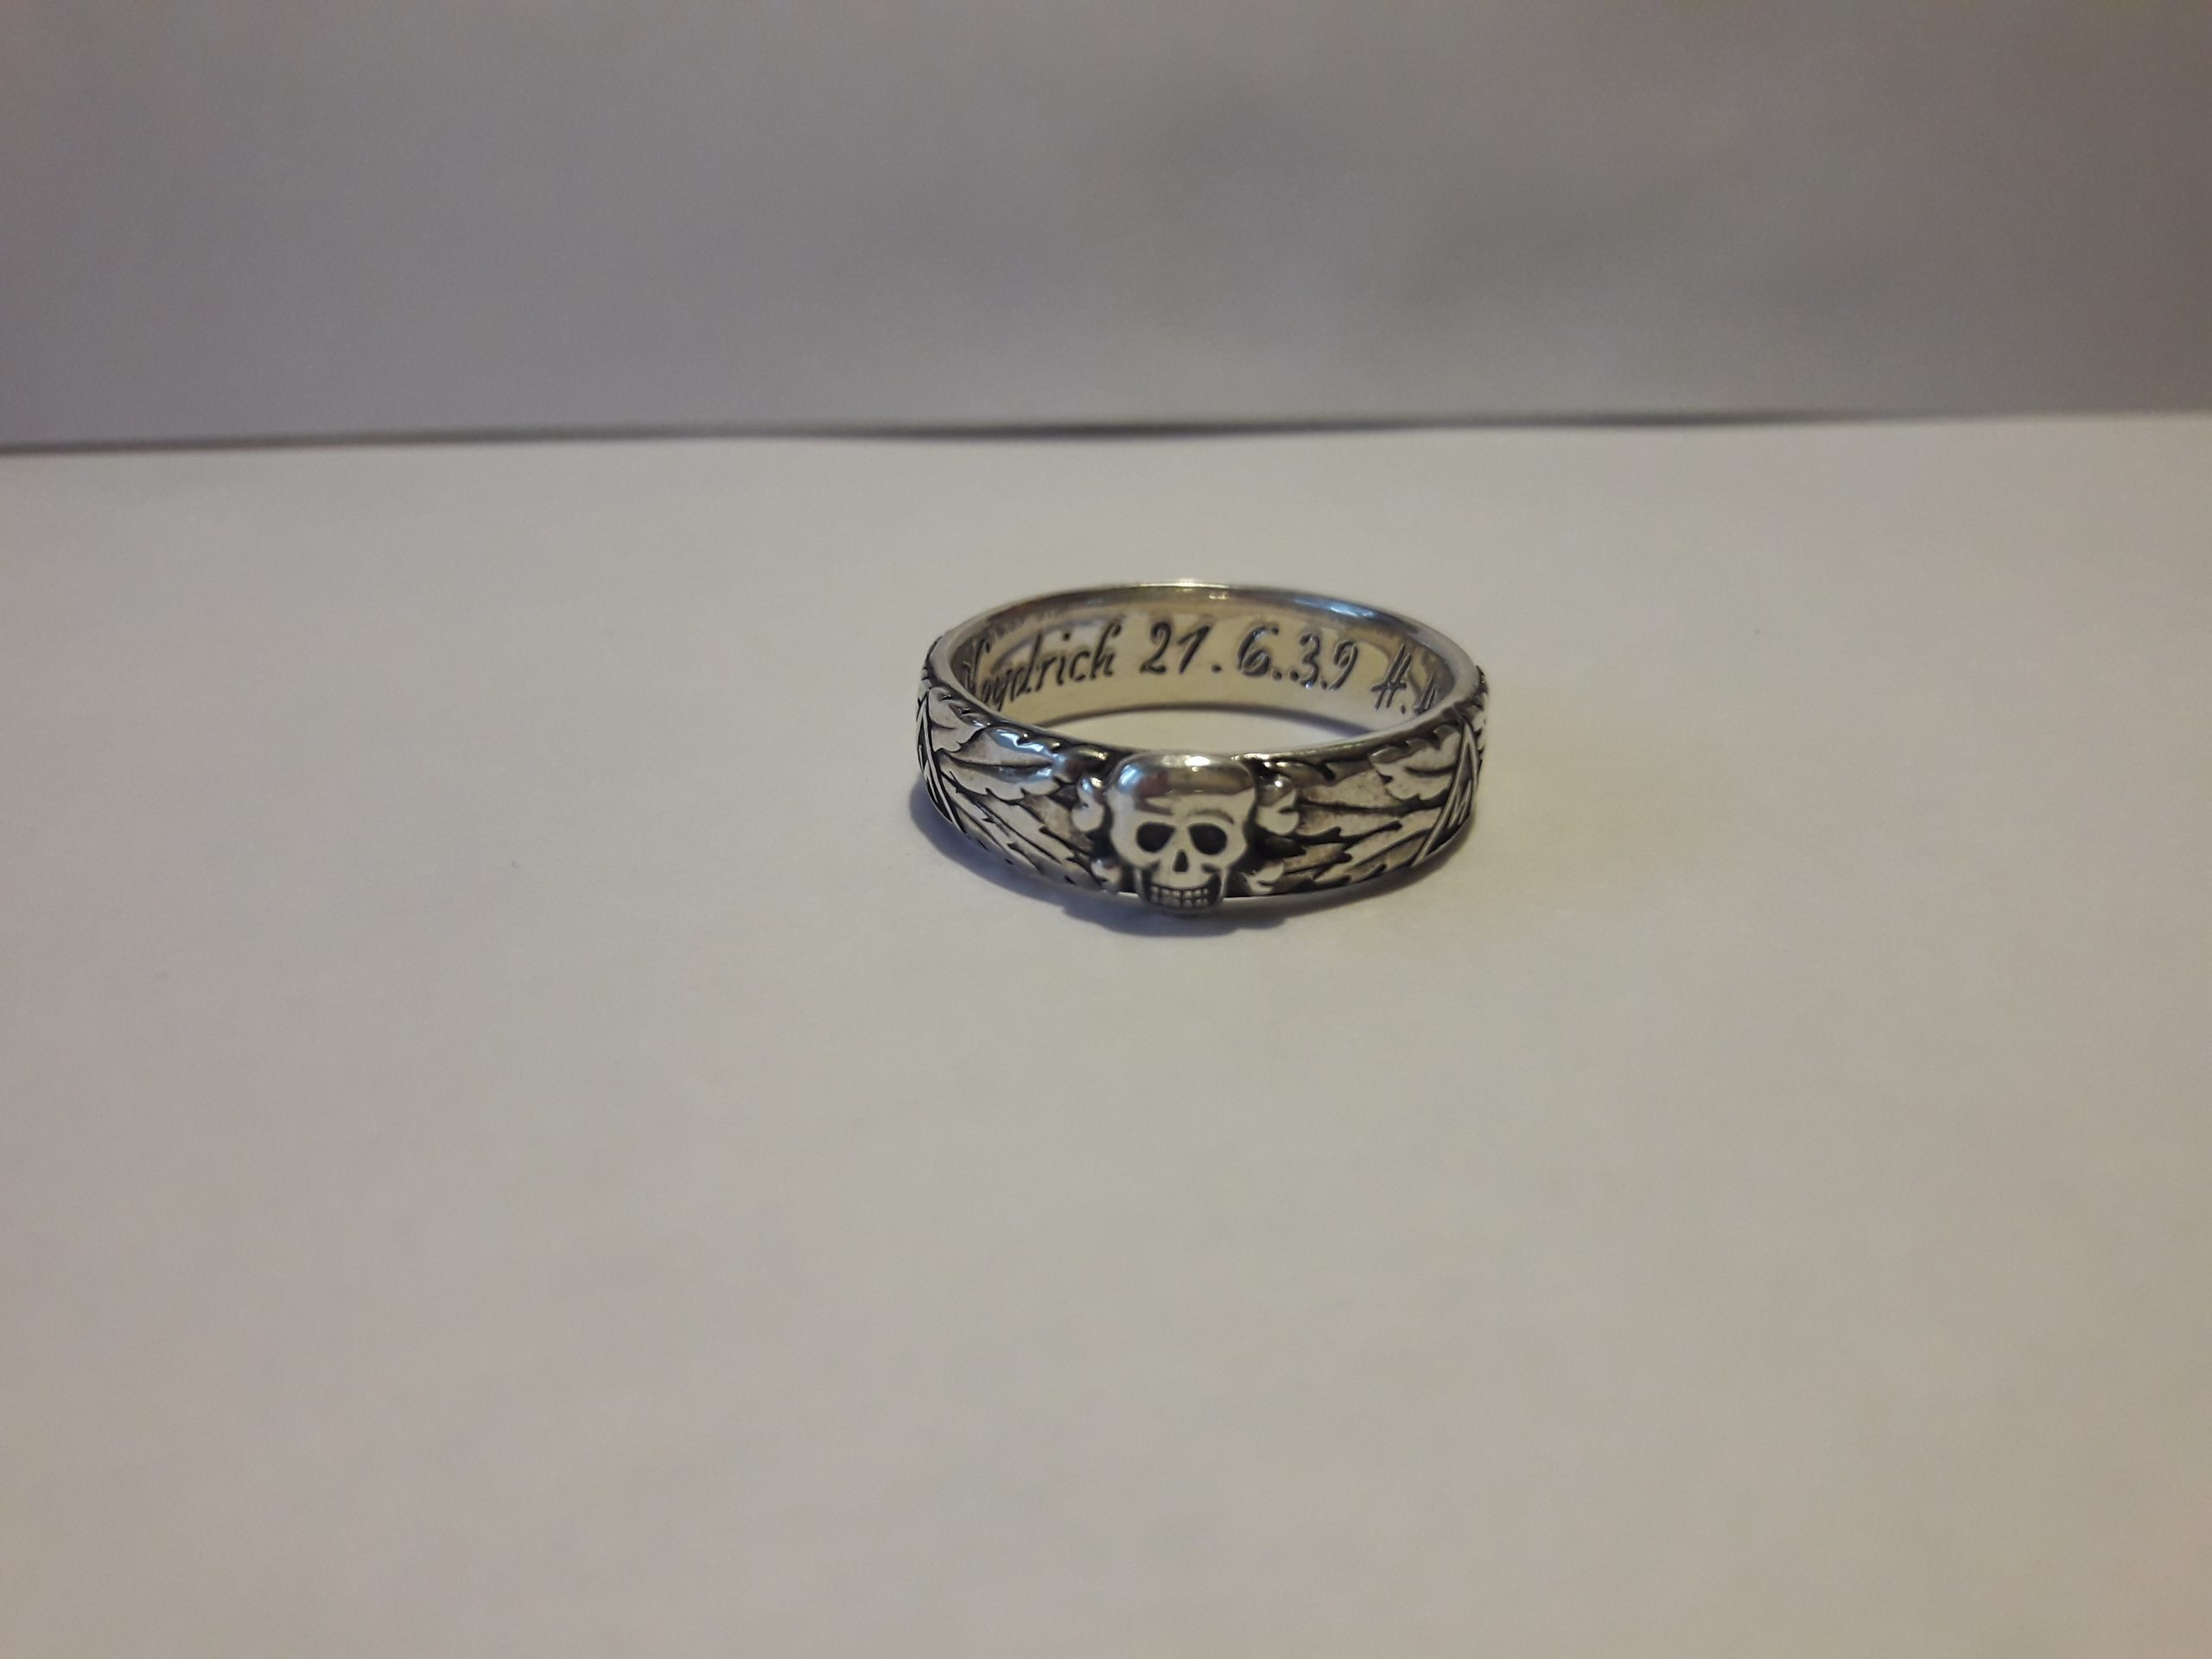 Opinions - Ss Honor Ring Repro